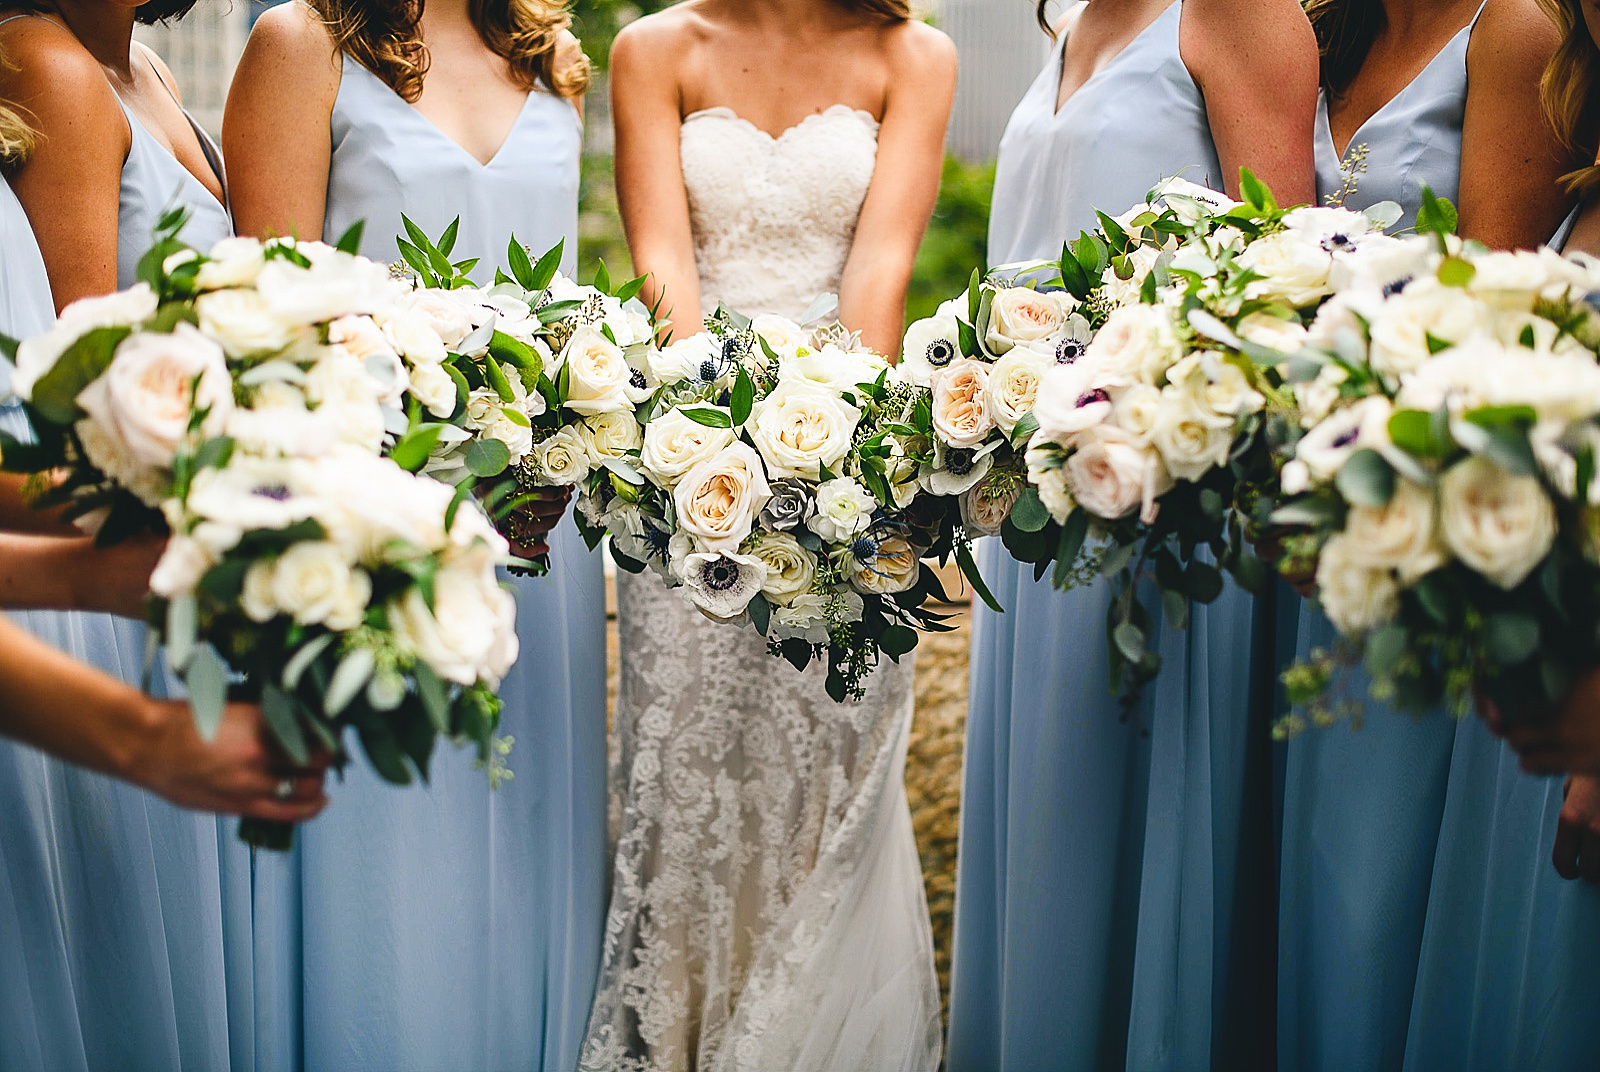 25 bridesmaids flowers - Audrey + Jake's Beautiful Chicago Wedding at Chez